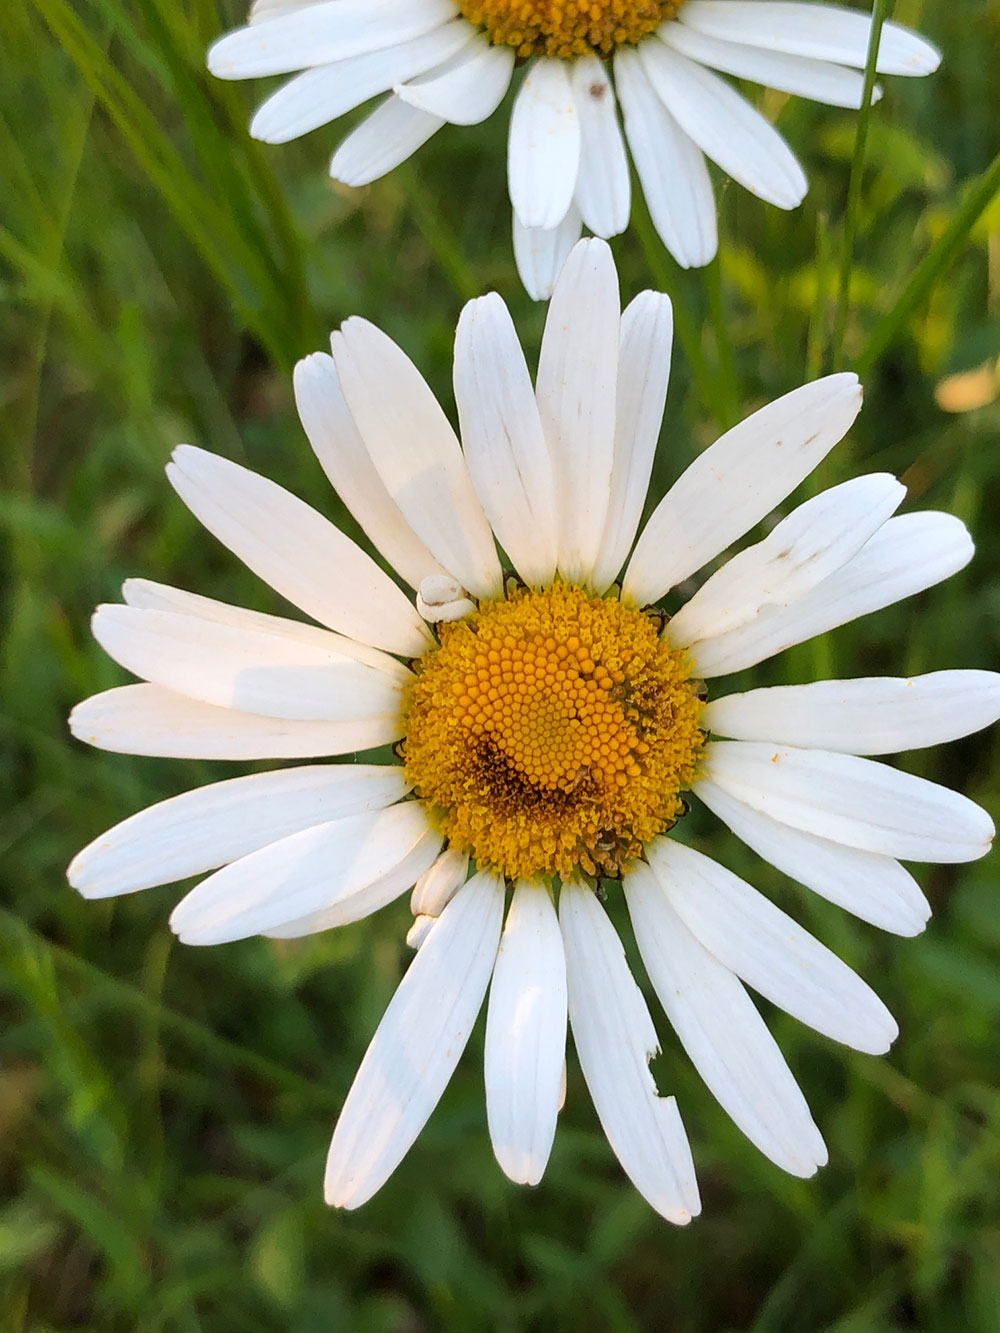 …and daisies